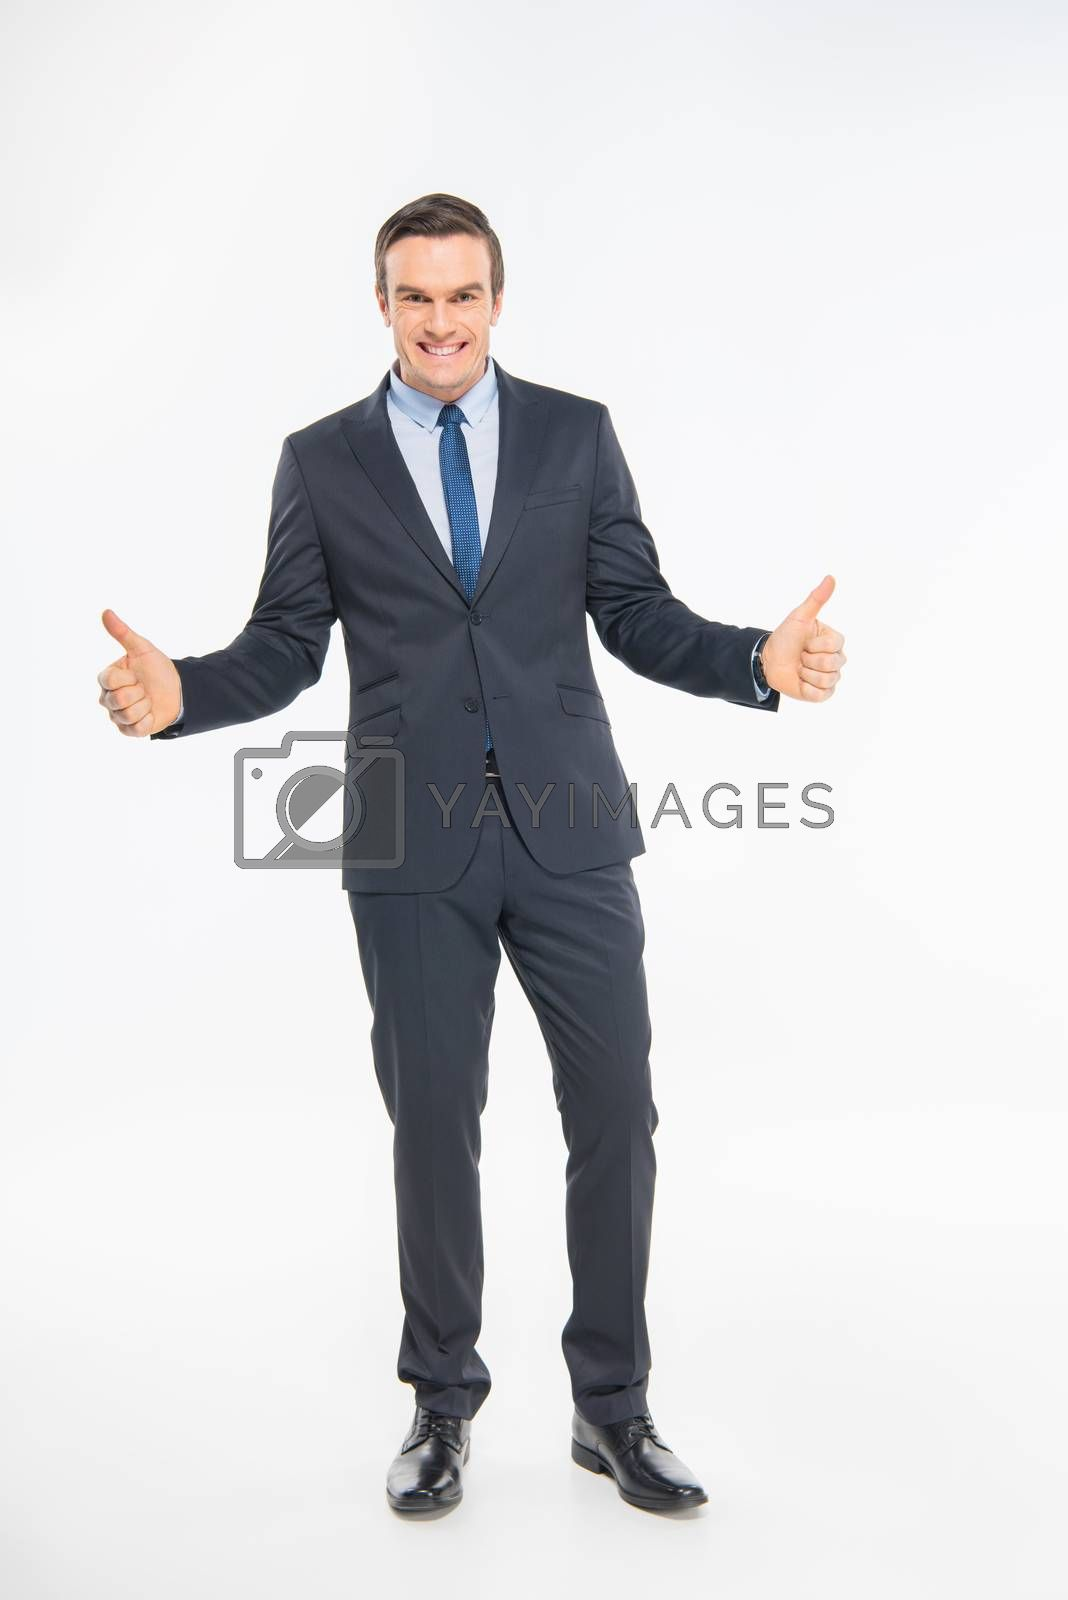 Professional smiling businessman showing thumbs up on white